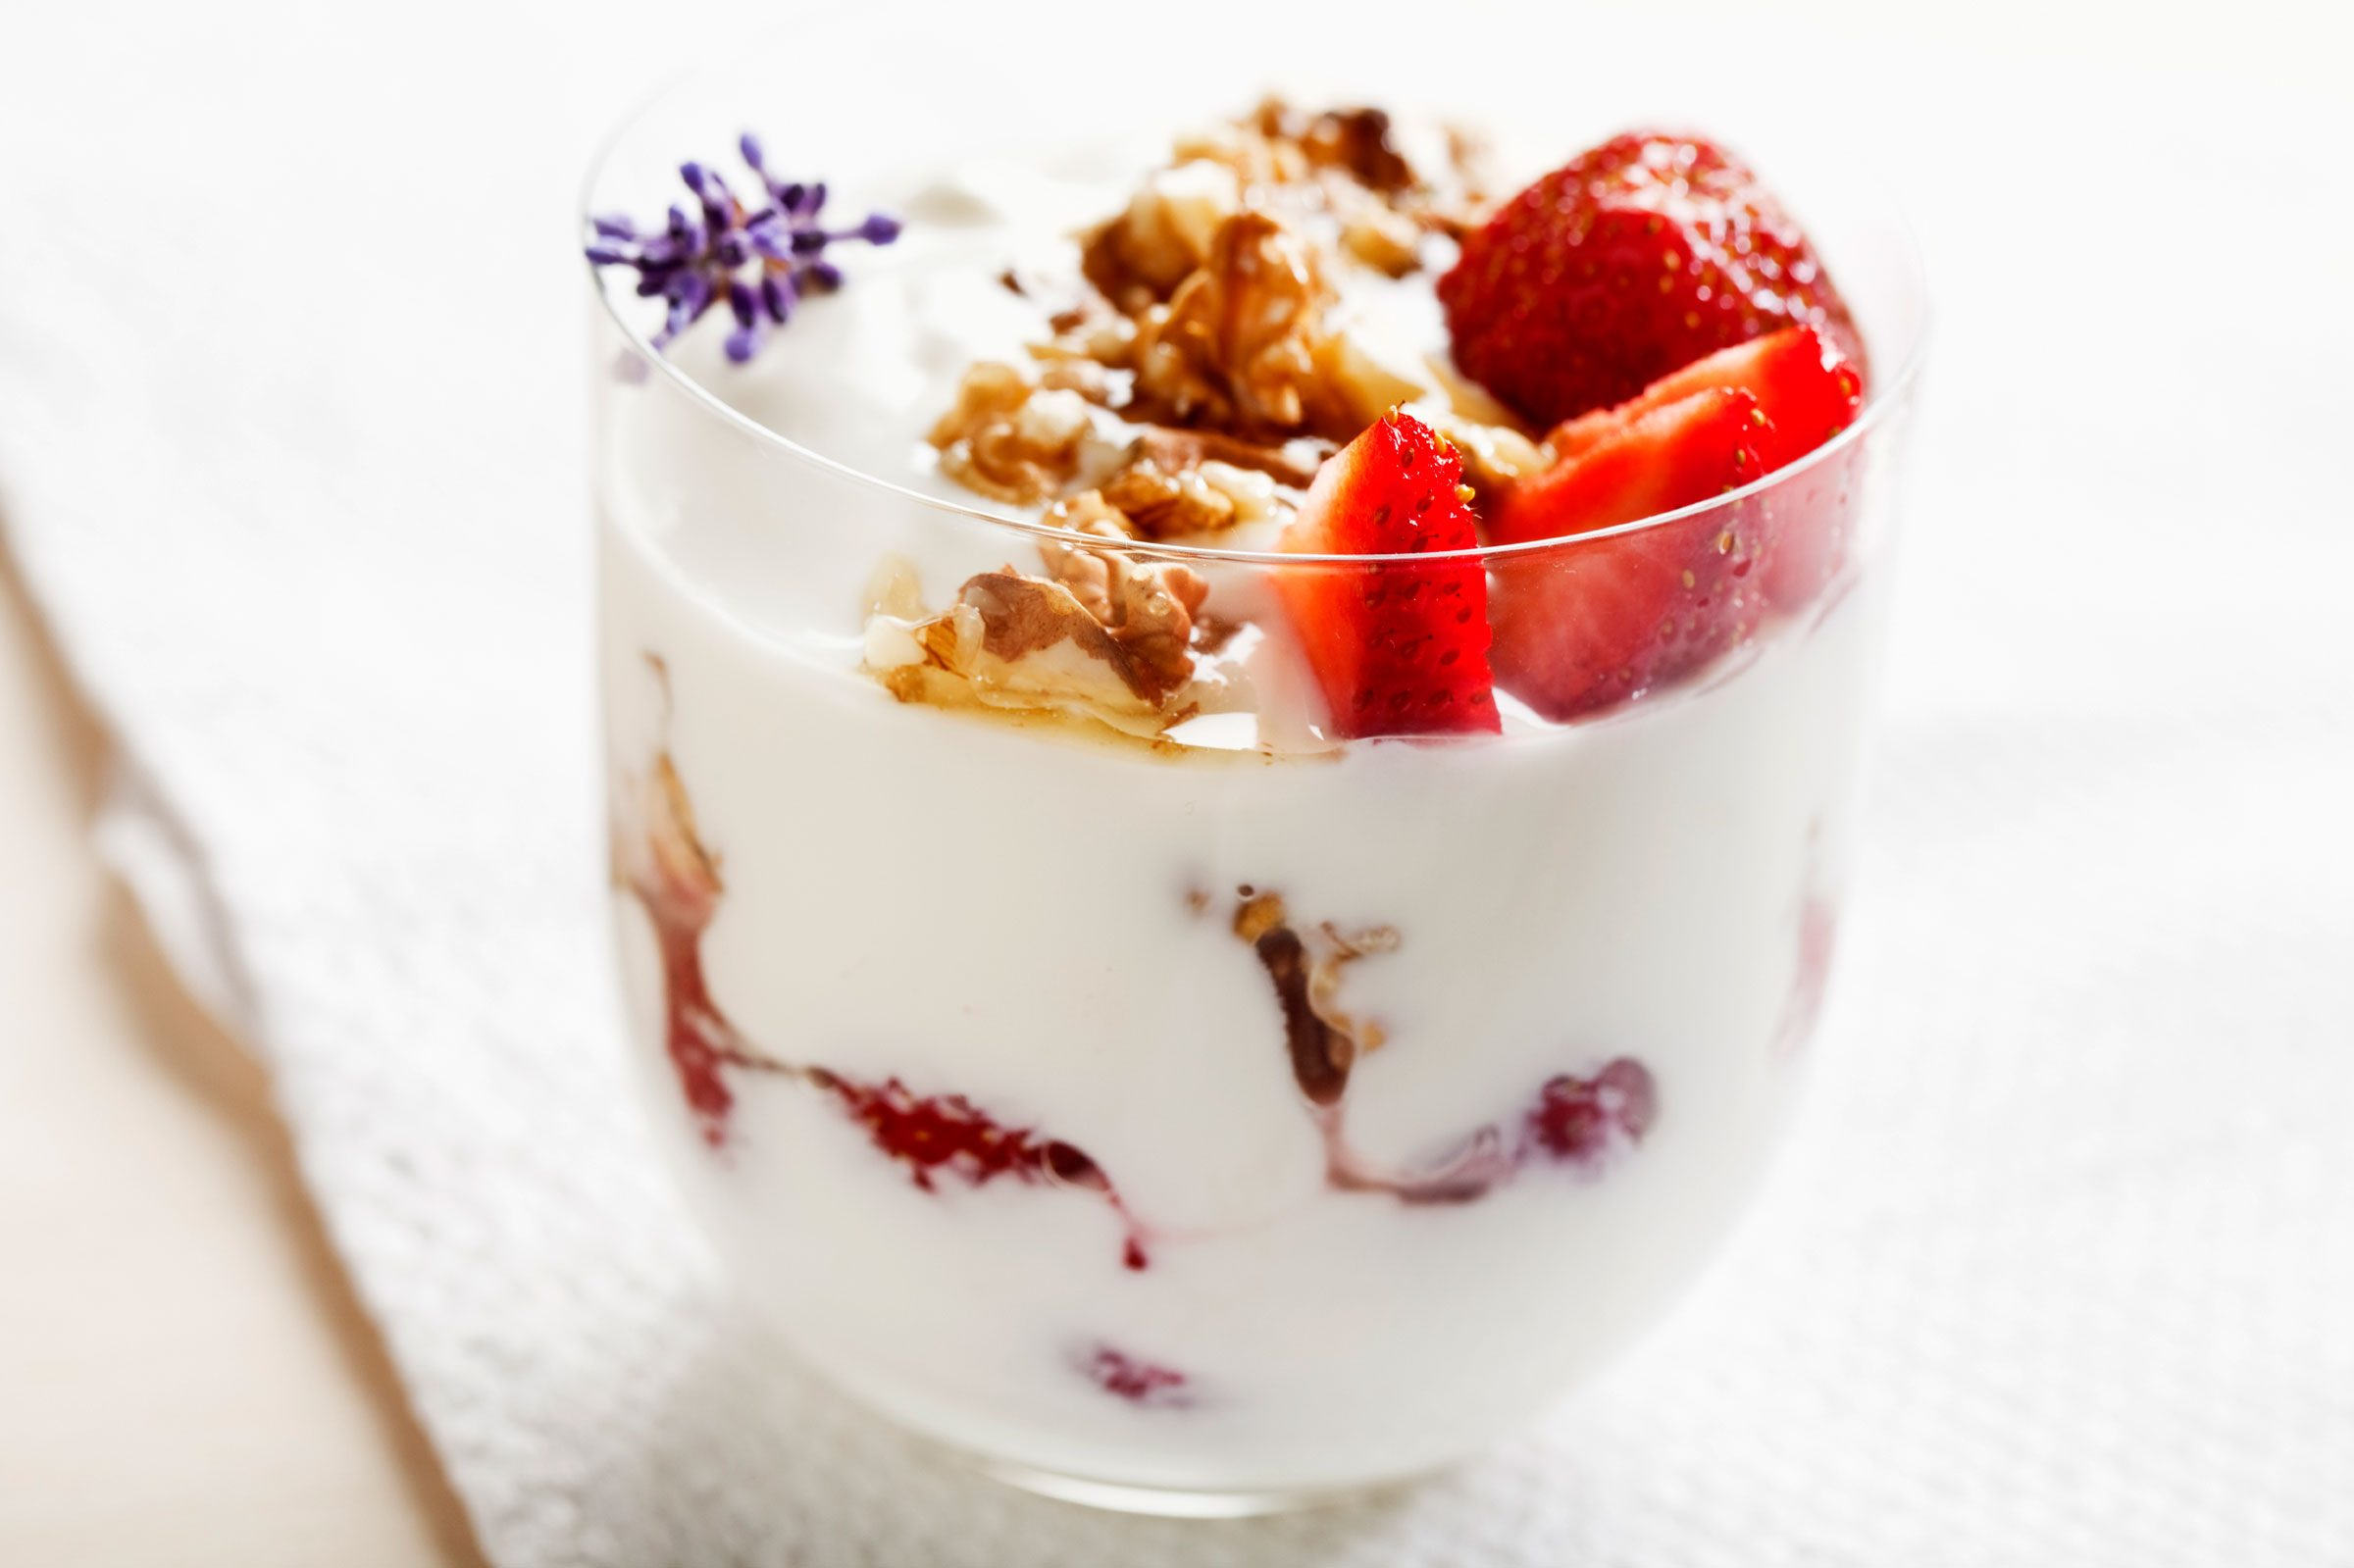 Your diet is light on probiotics